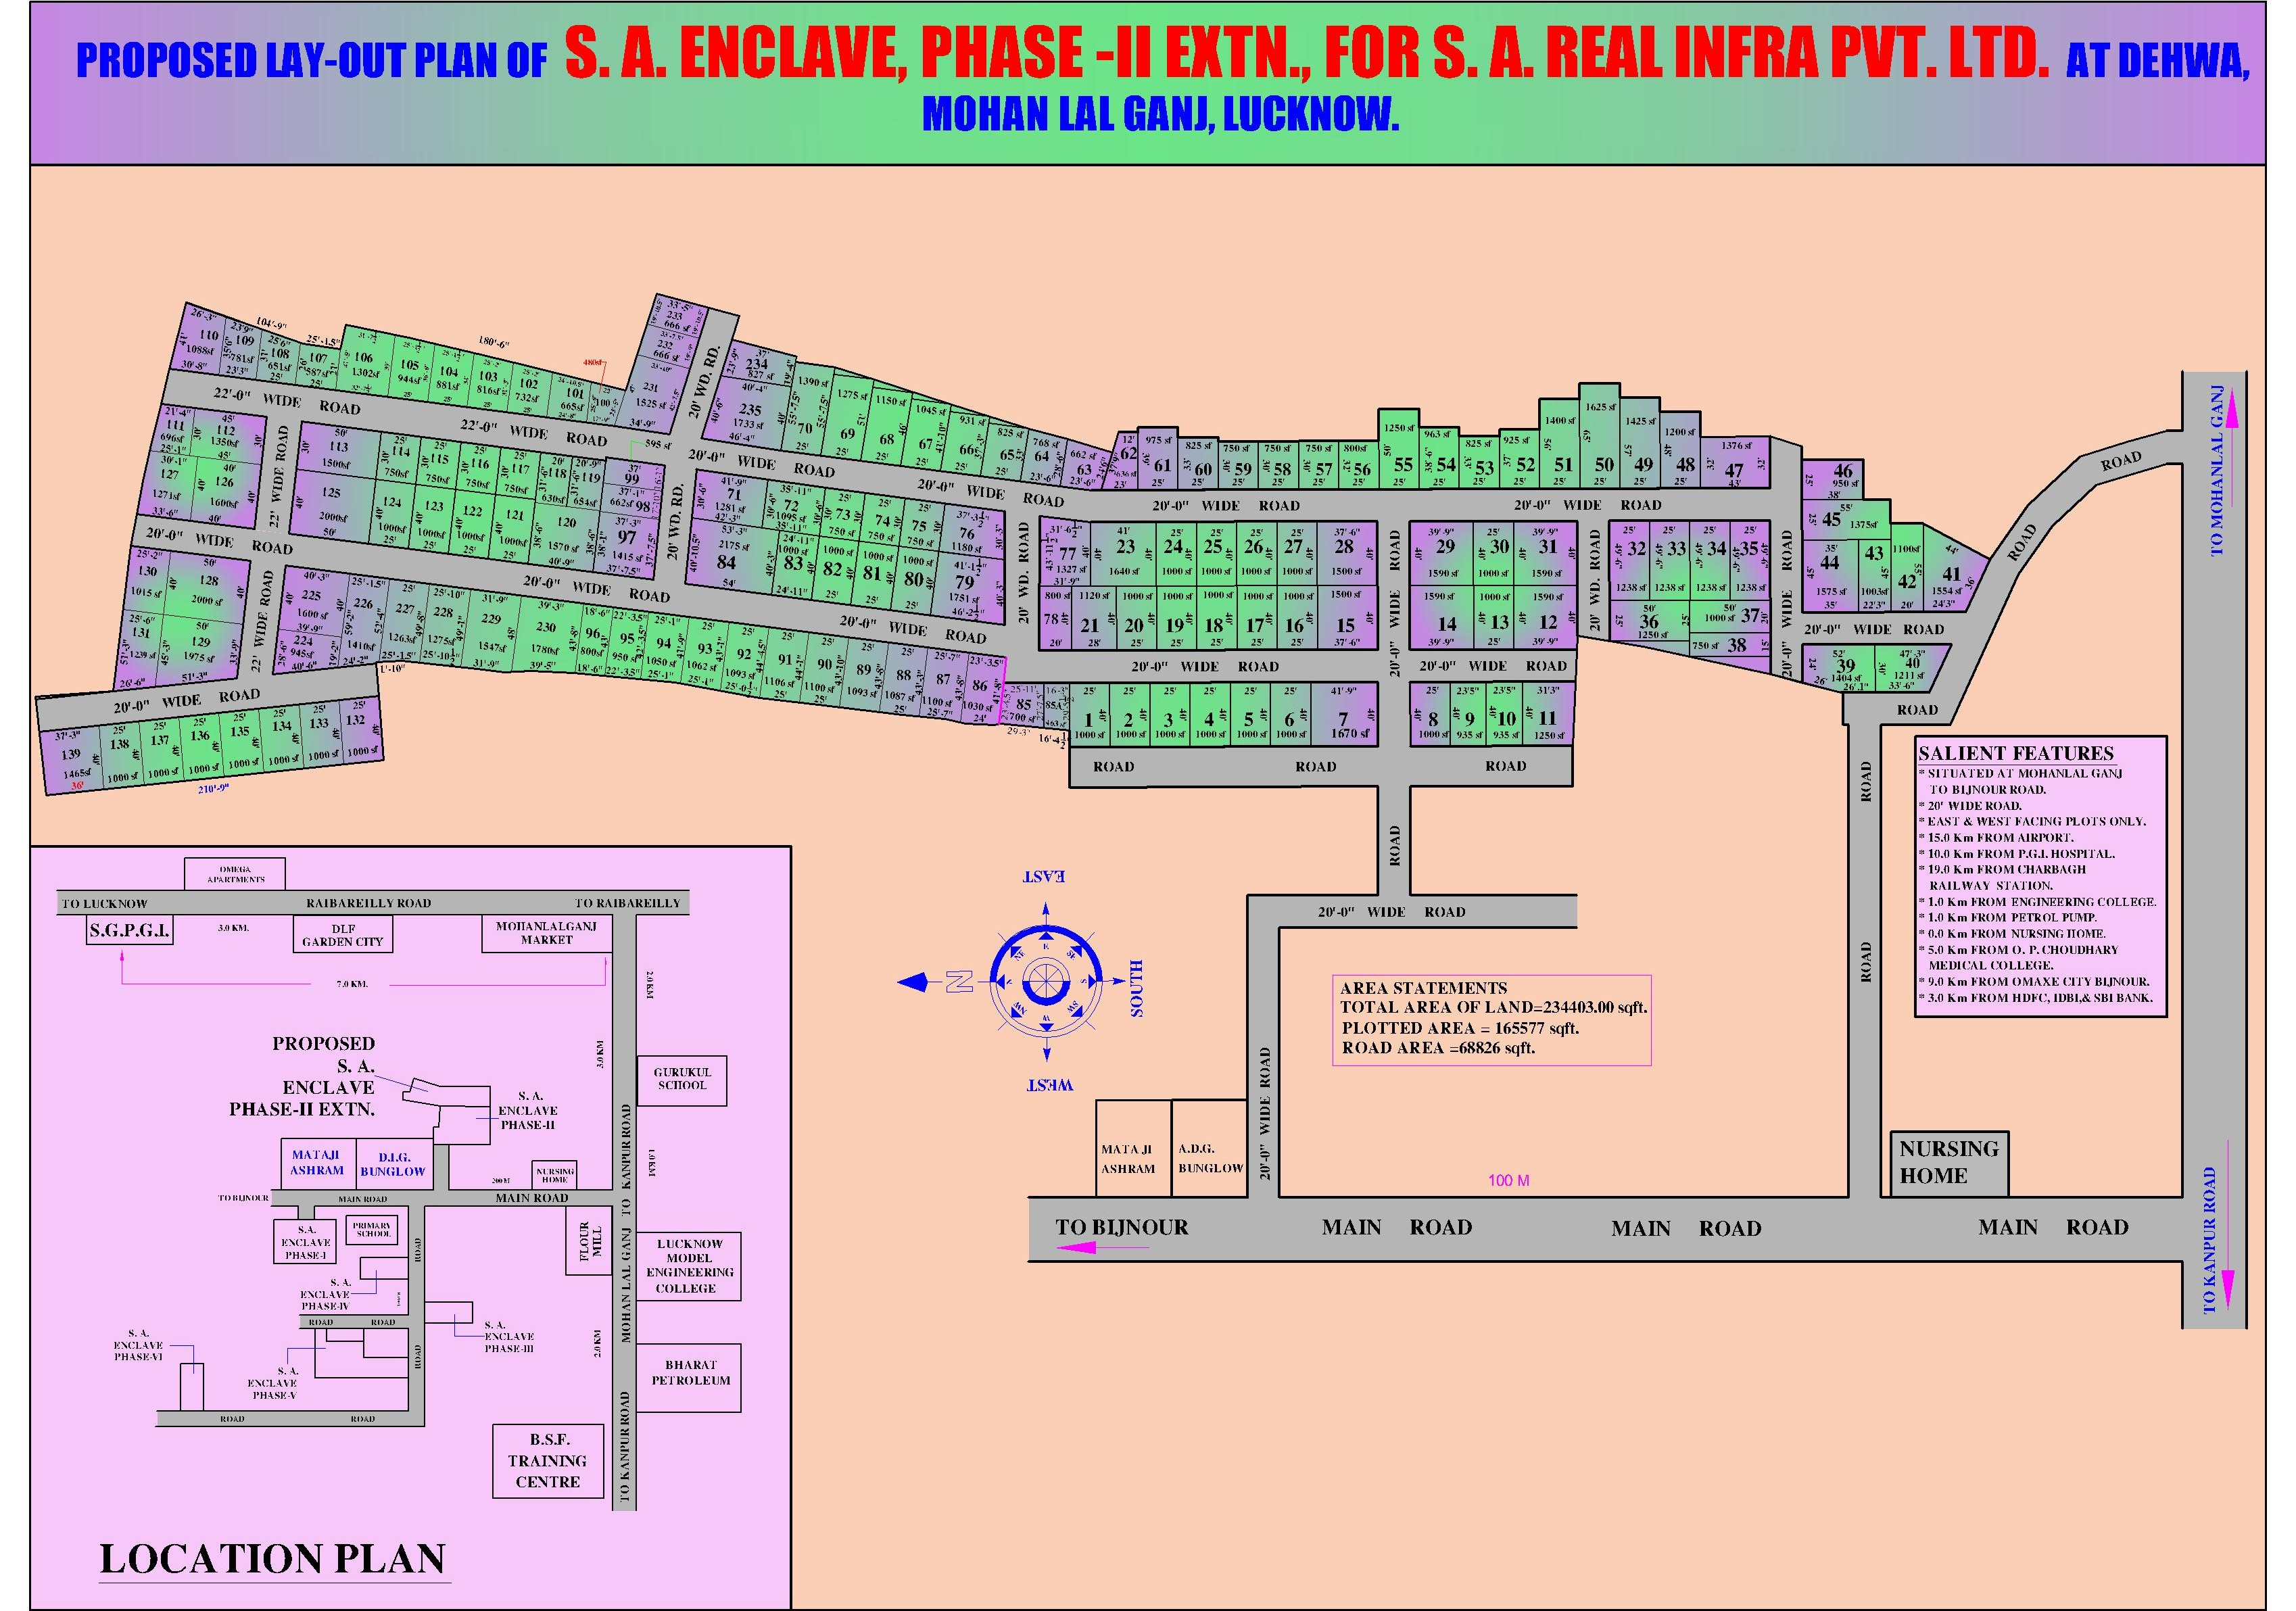 S.A. ENCLAVE ( PHASE 2 EXTN )